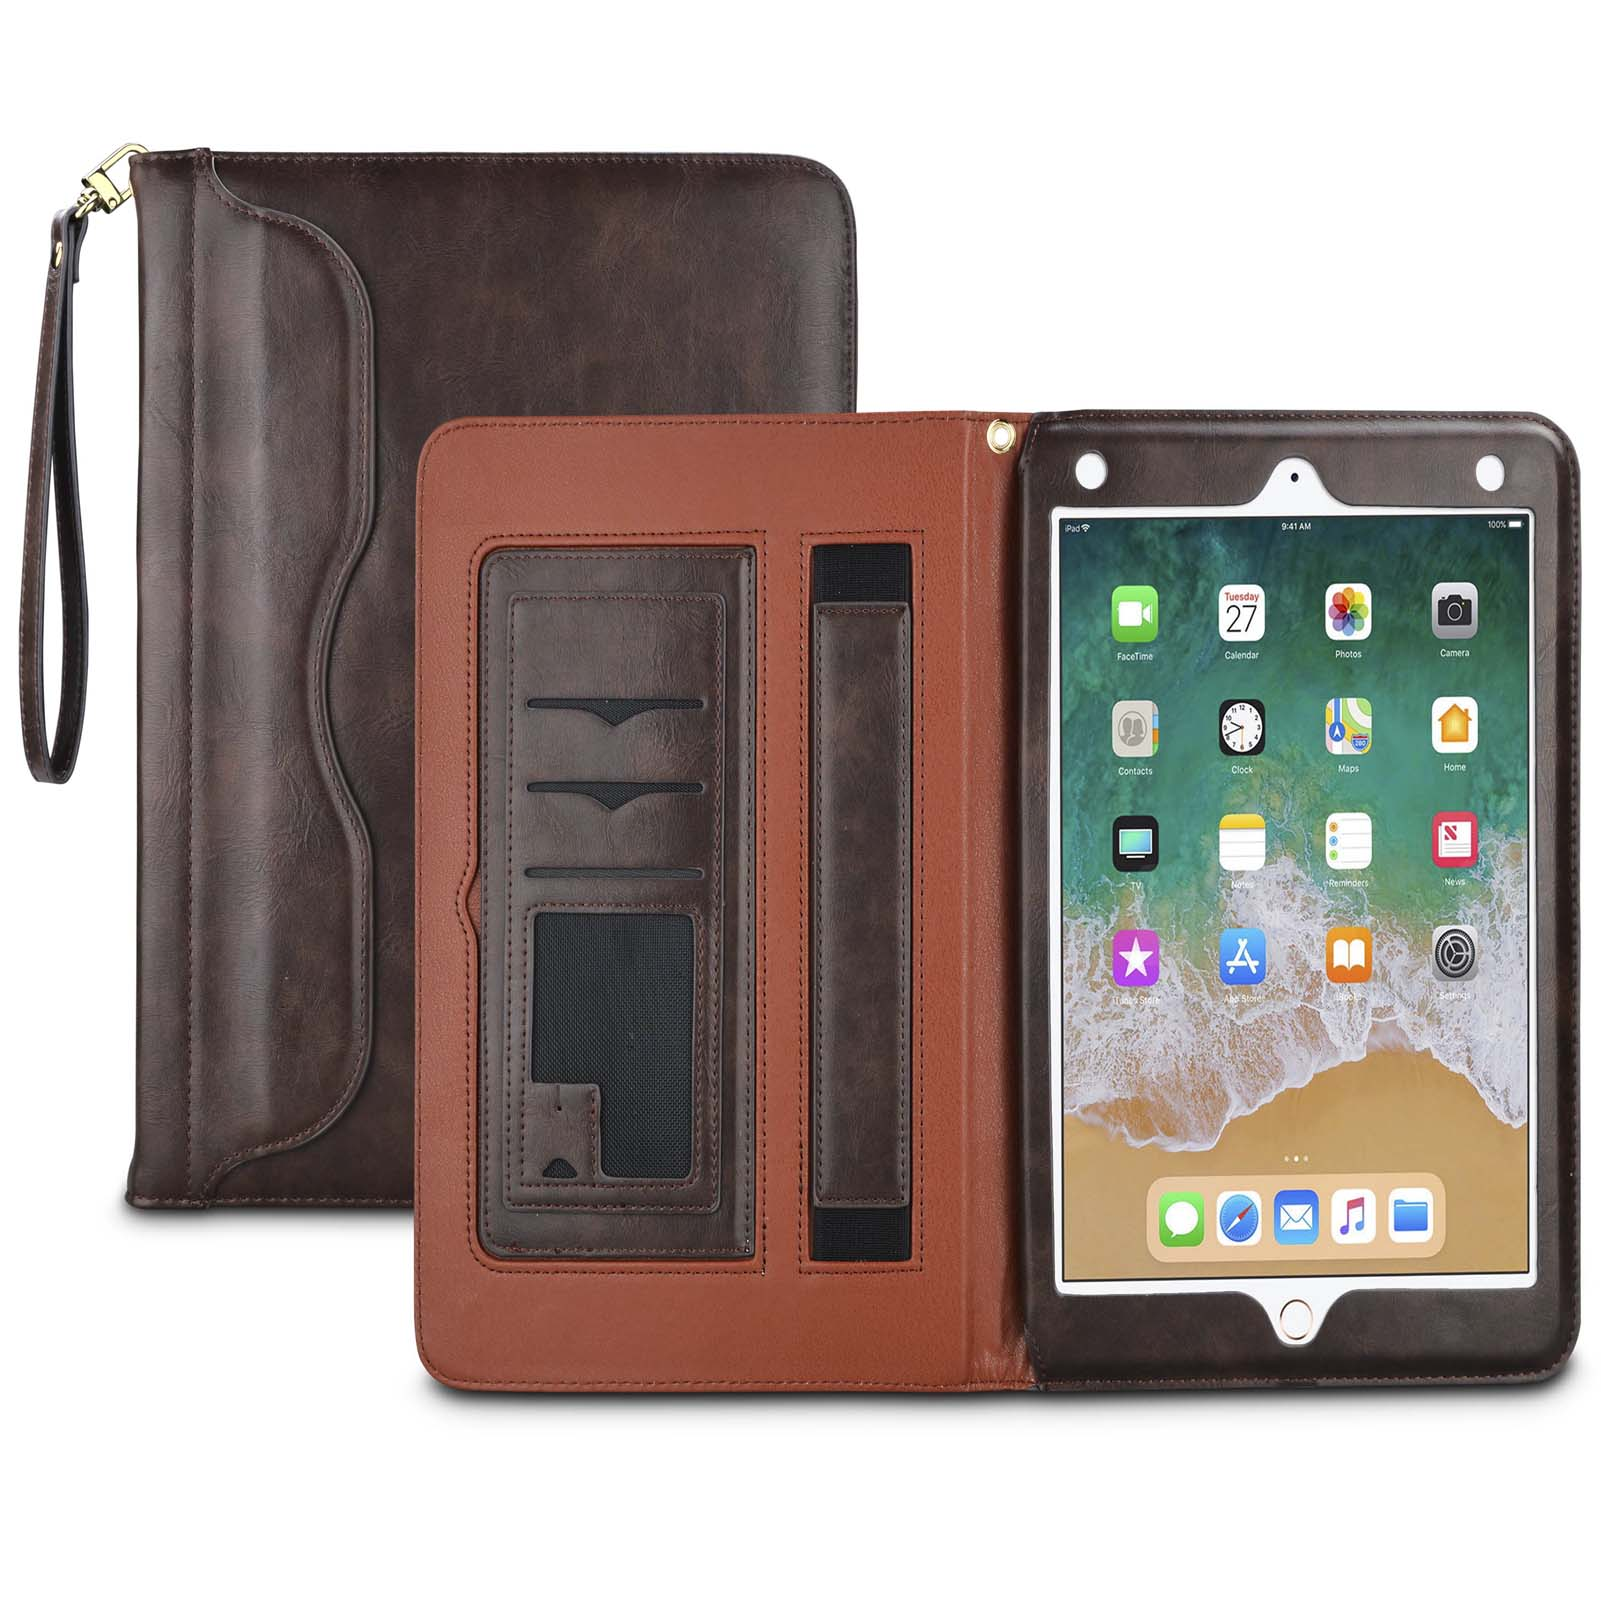 Njjex Case Apple iPad Mini / iPad Mini 2 / iPad Mini 3, [Secure Hand Strap] Premium Leather Slim Folio Stand Flip Smart Cover w/ Pocket Document Card Slots, Auto Wake/Sleep -Brown